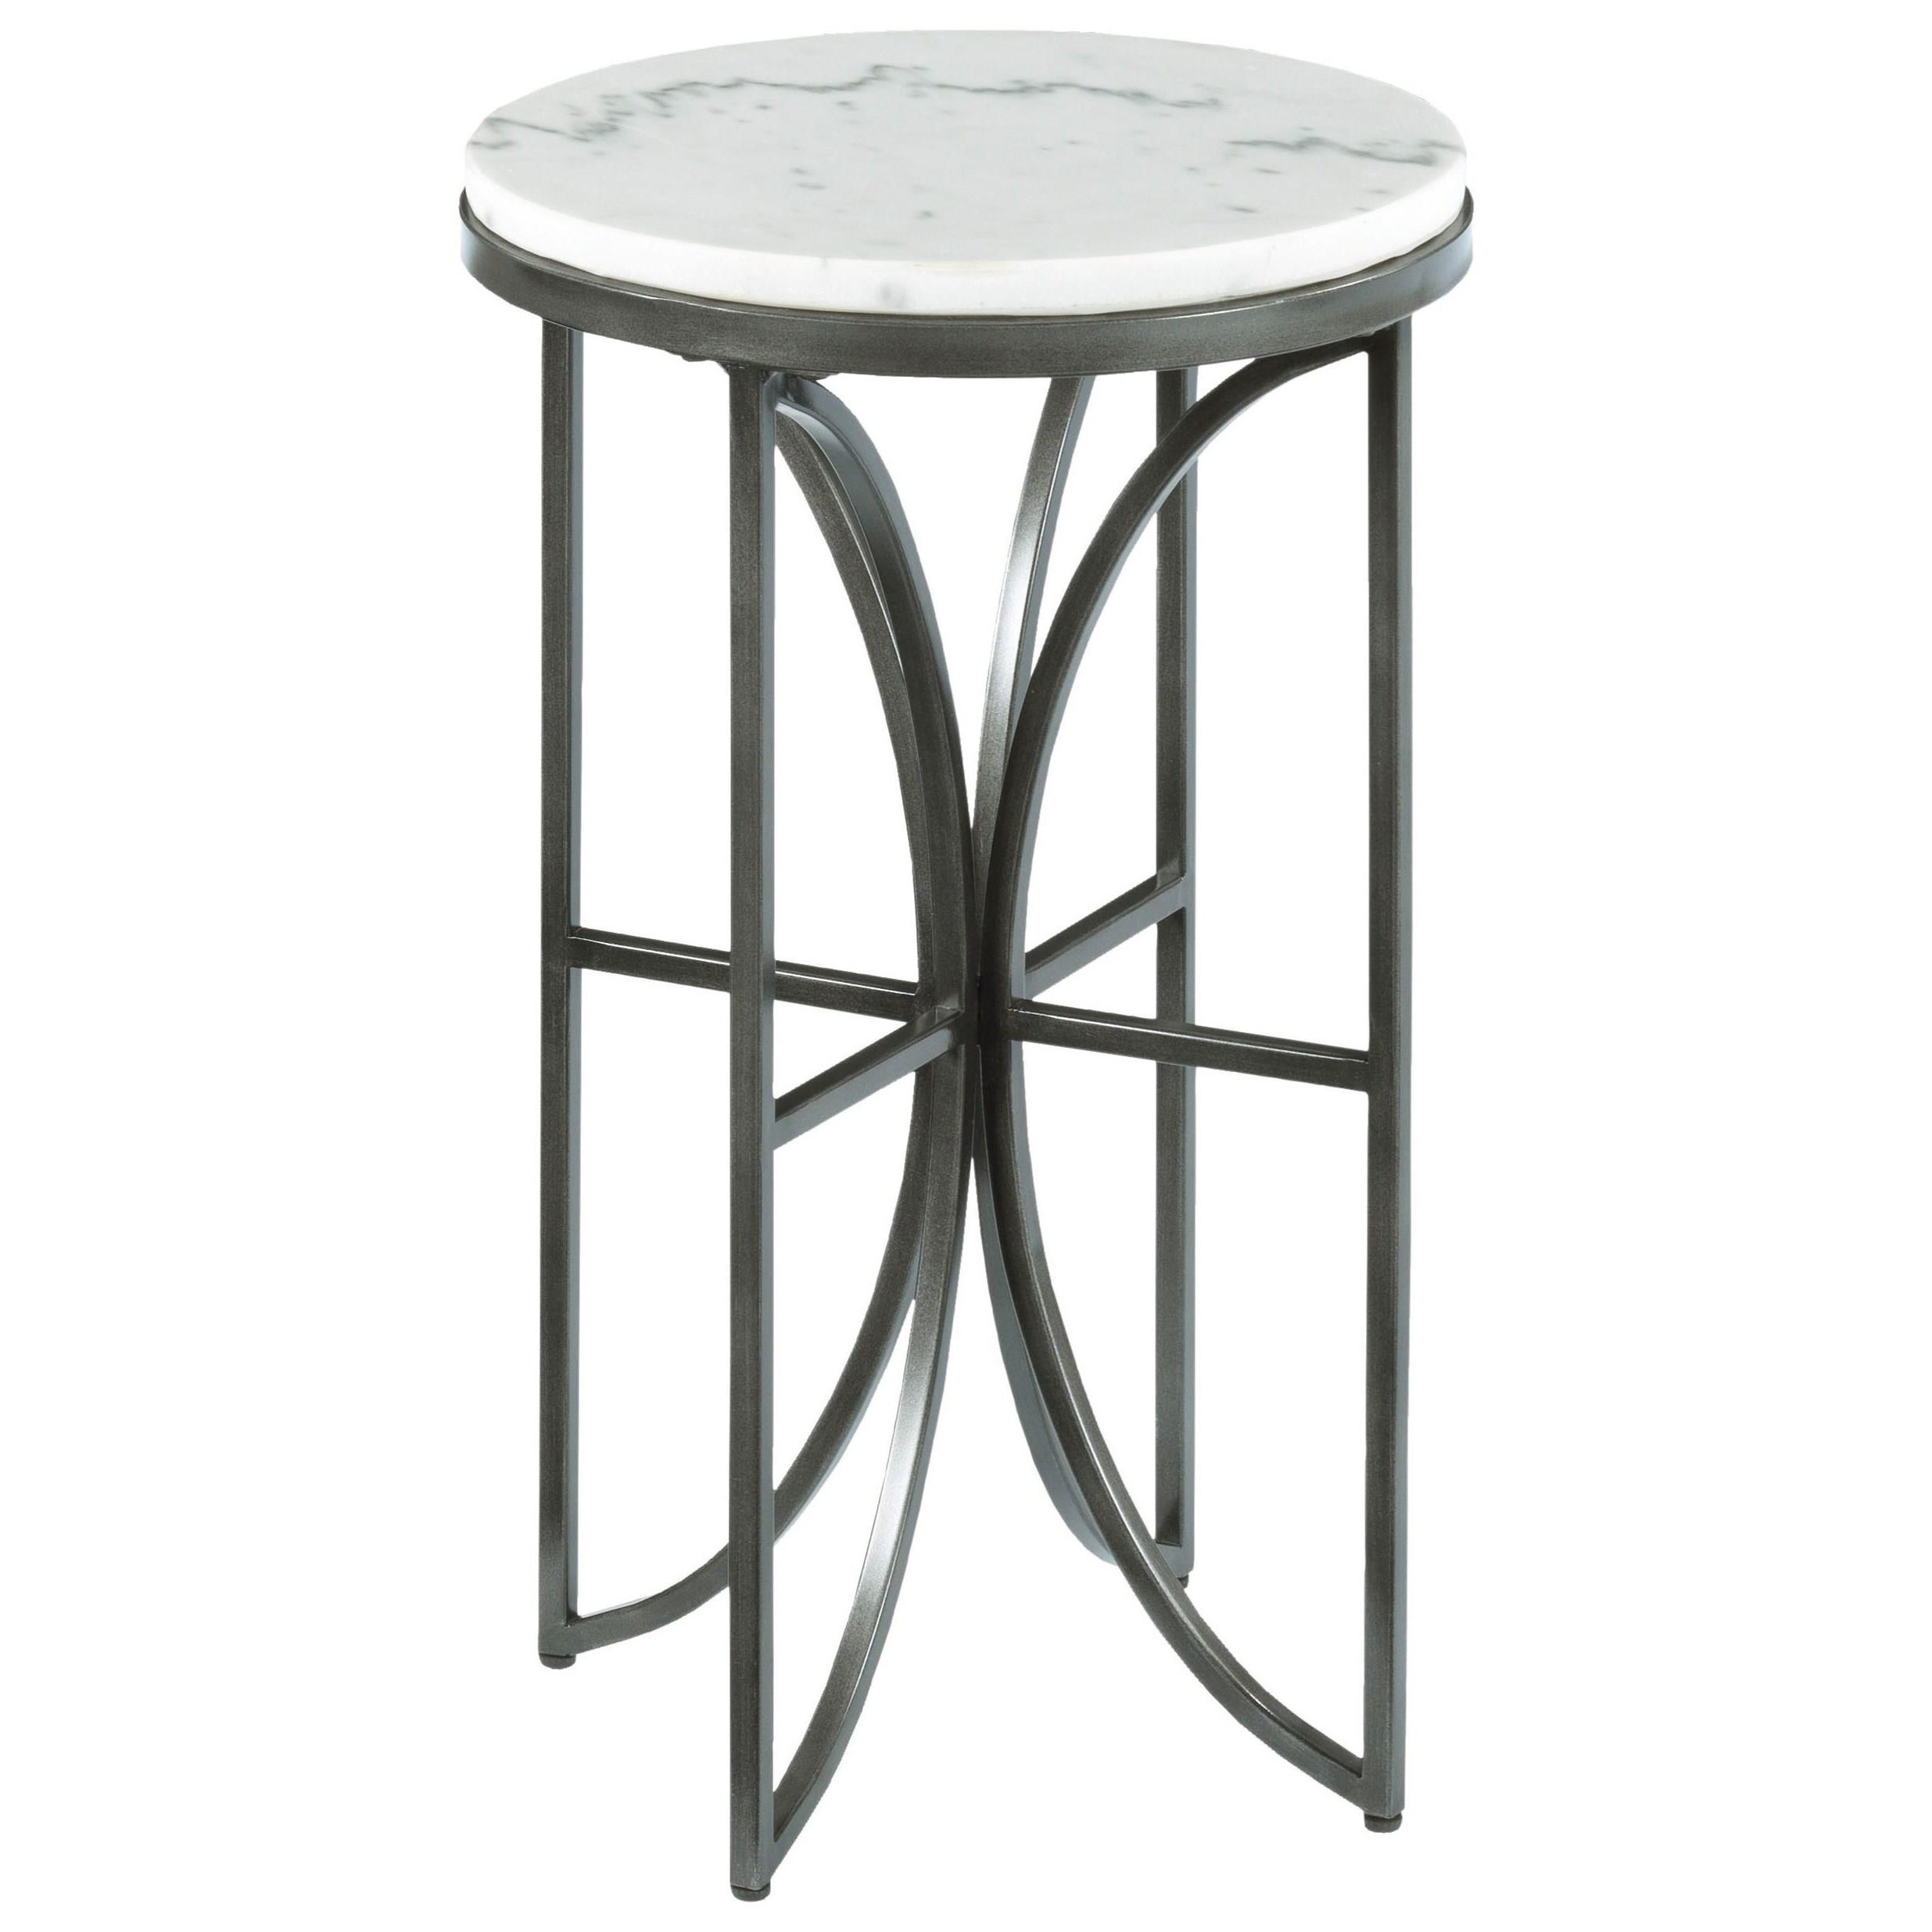 white round accent table rustic jigsy products hammary color impact neelan outdoor morris home impactsmall small with marble top tablecloth bathroom units acrylic pedestal large